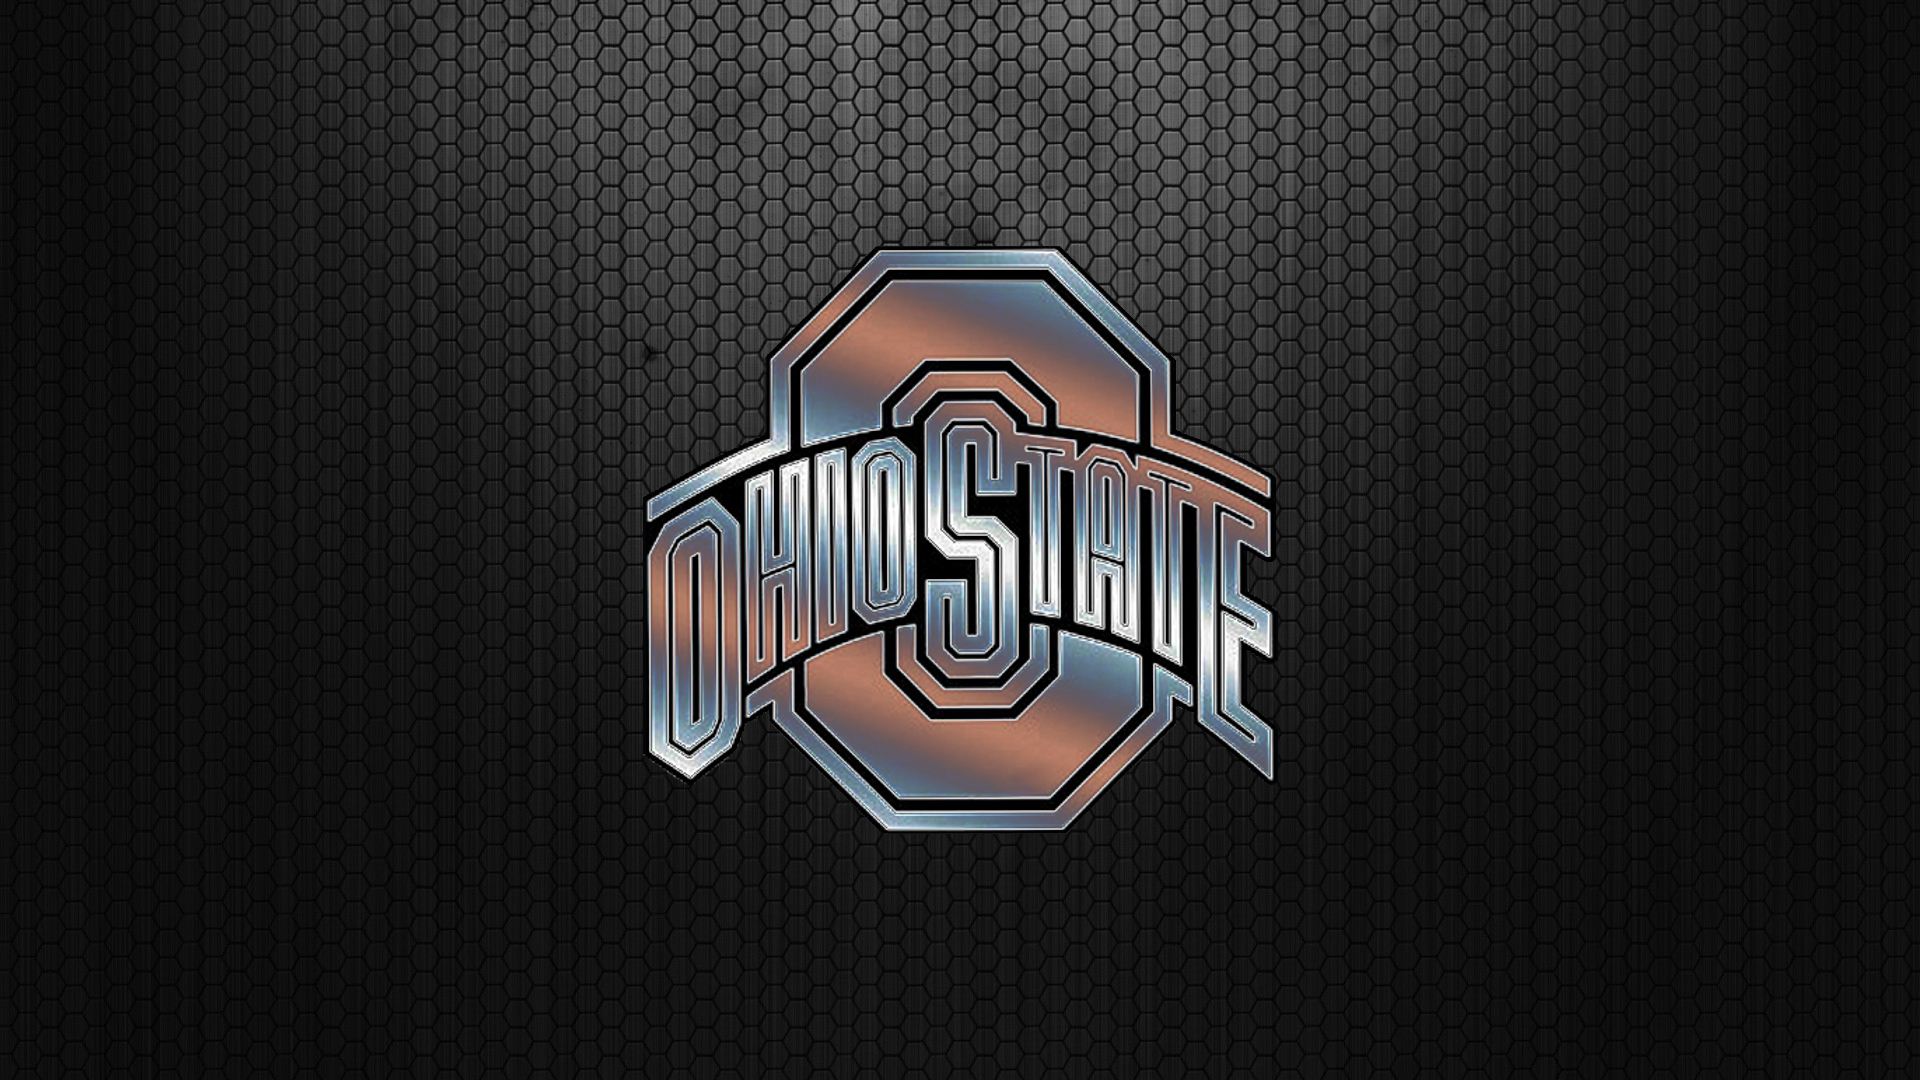 Osu wallpapers sf wallpaper ohio state wallpaper hd wallpapersafari voltagebd Image collections